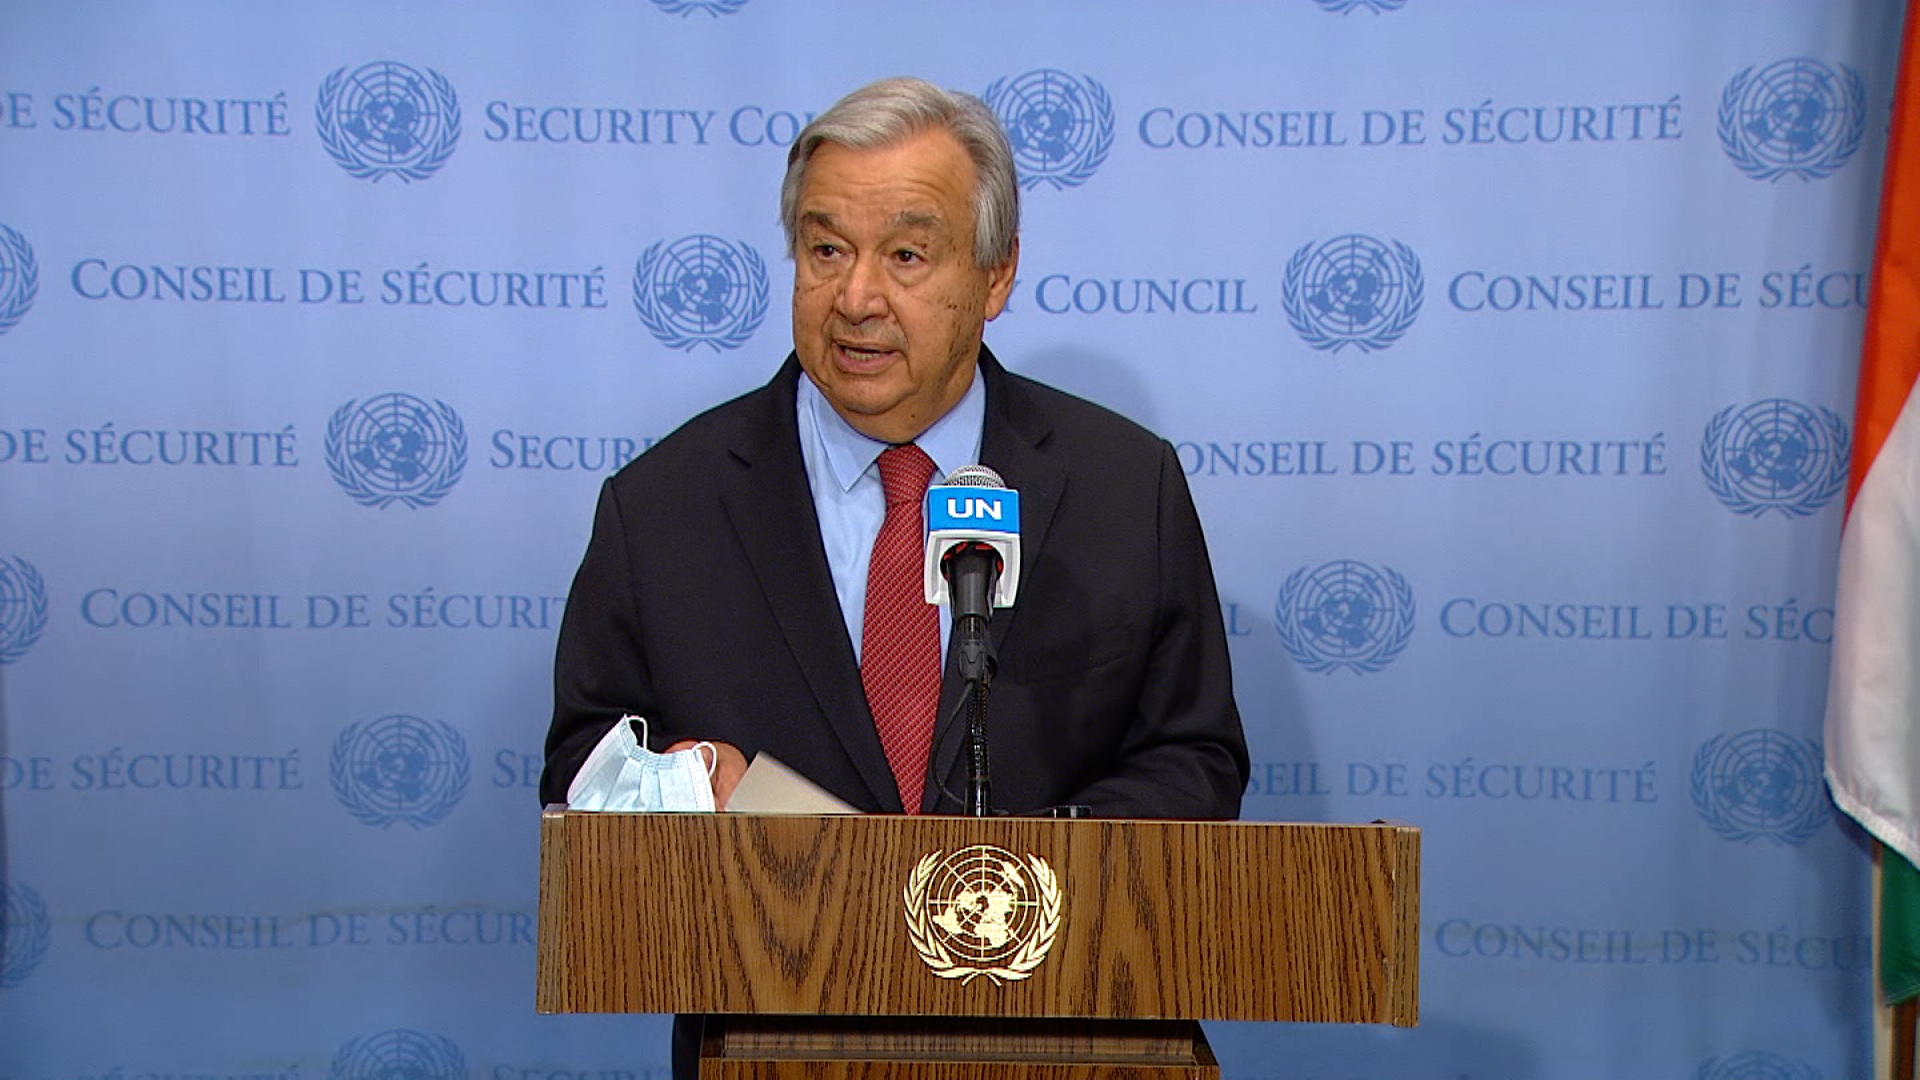 United Nations Secretary-General António Guterres speaks during a press conference on August 13.